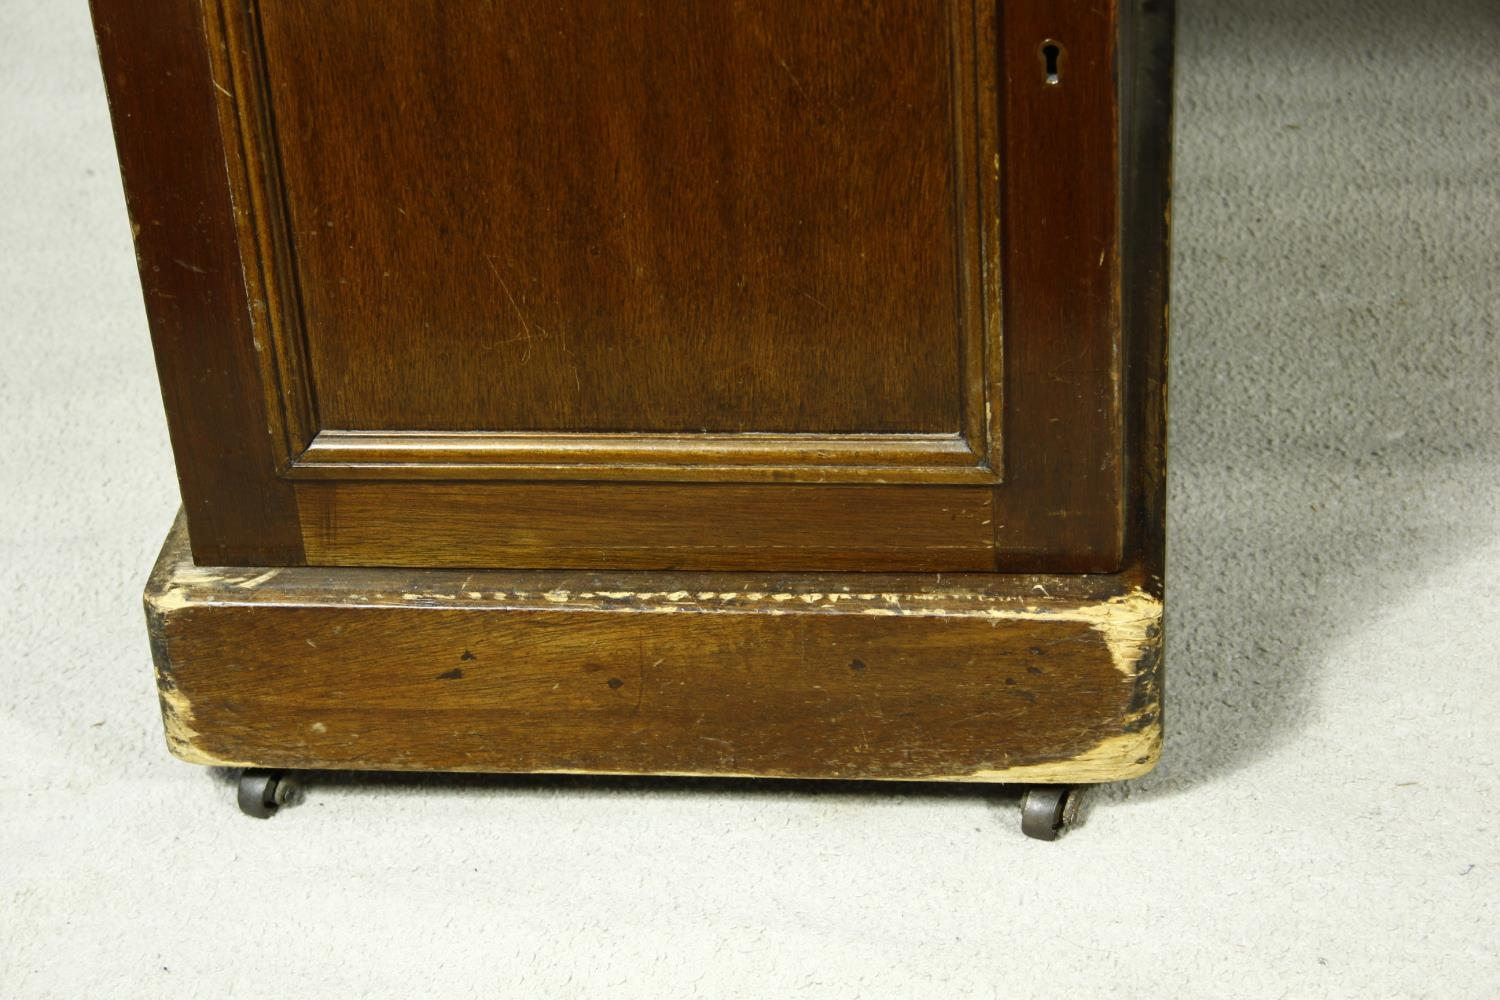 A C.1900 mahogany three section partner's pedestal desk with inset tooled leather top above an - Image 20 of 20